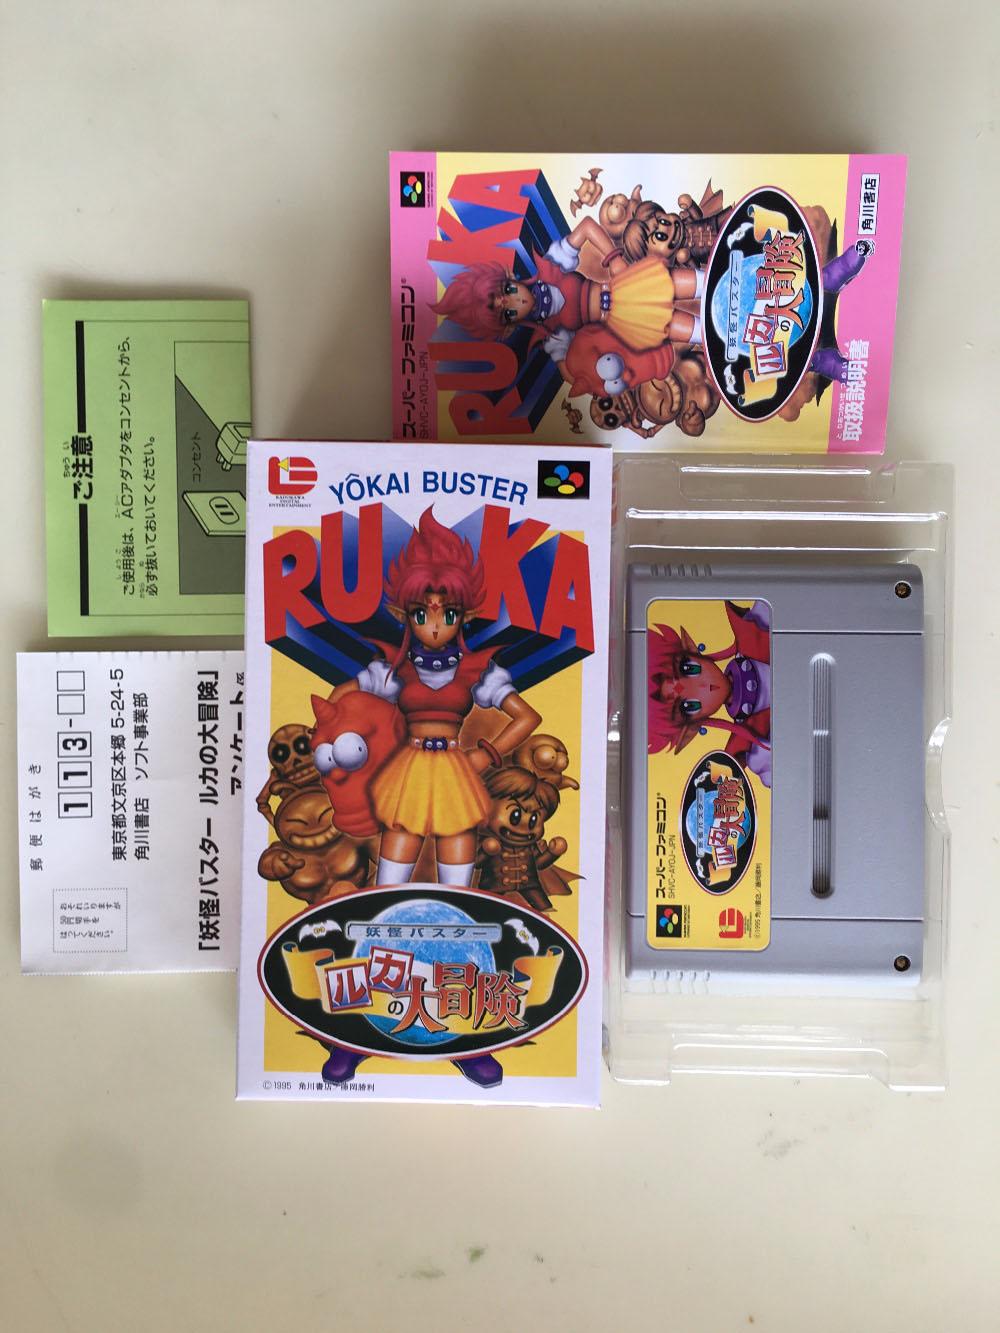 16Bit Games Yokai Buster Ruka Japan NTSC J Version Box Manual Cartridge